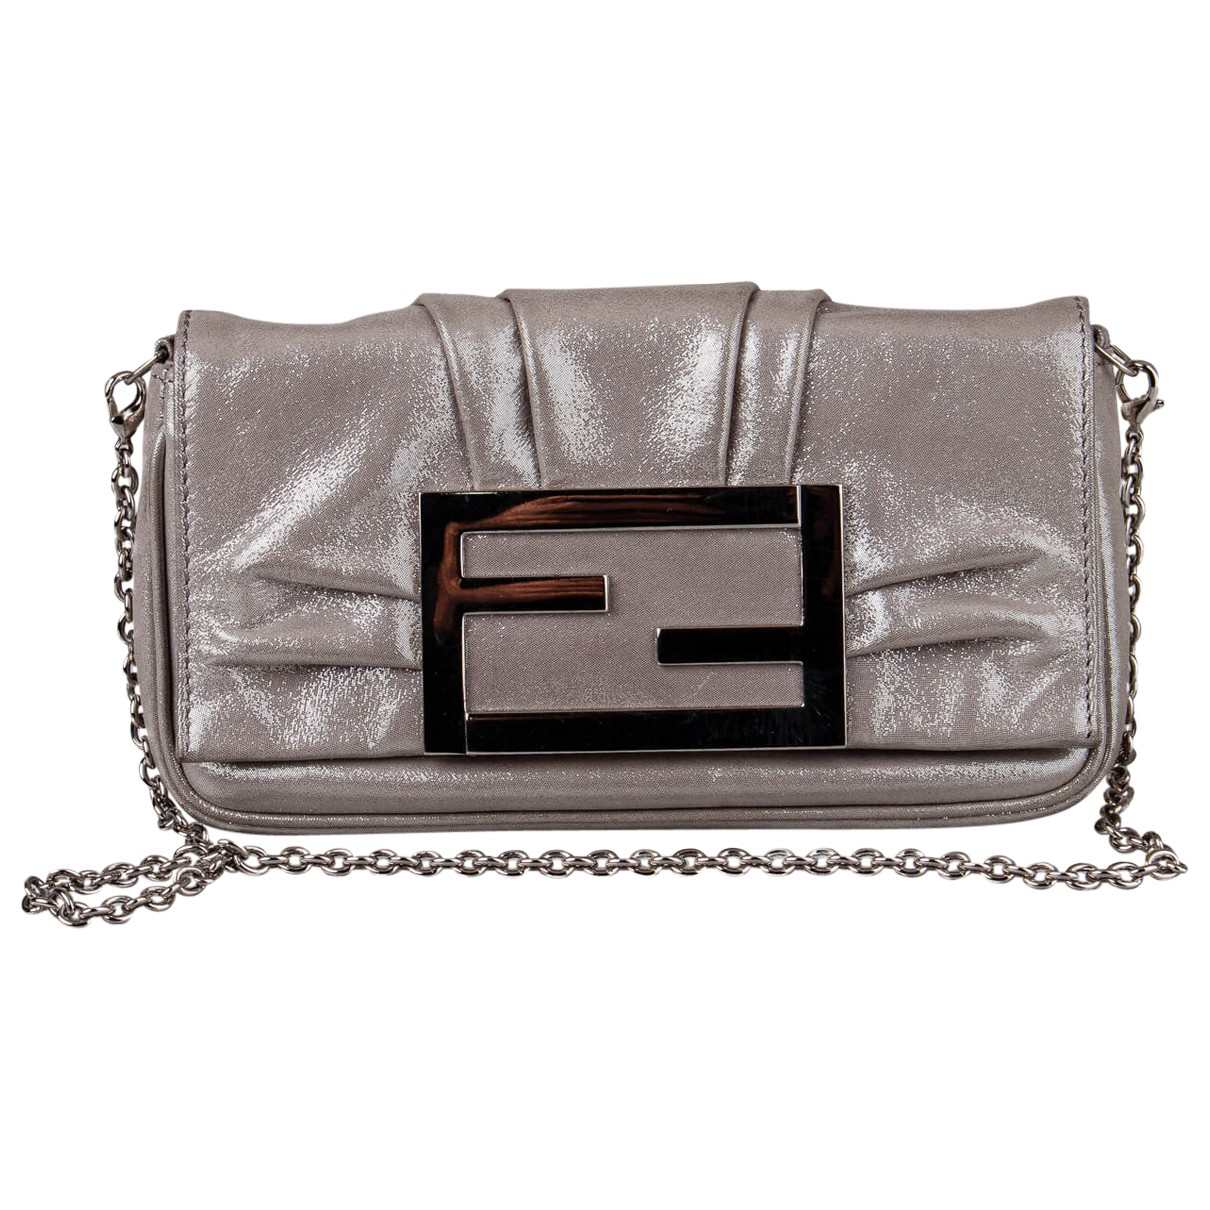 Fendi N Silver Leather Clutch bag for Women N